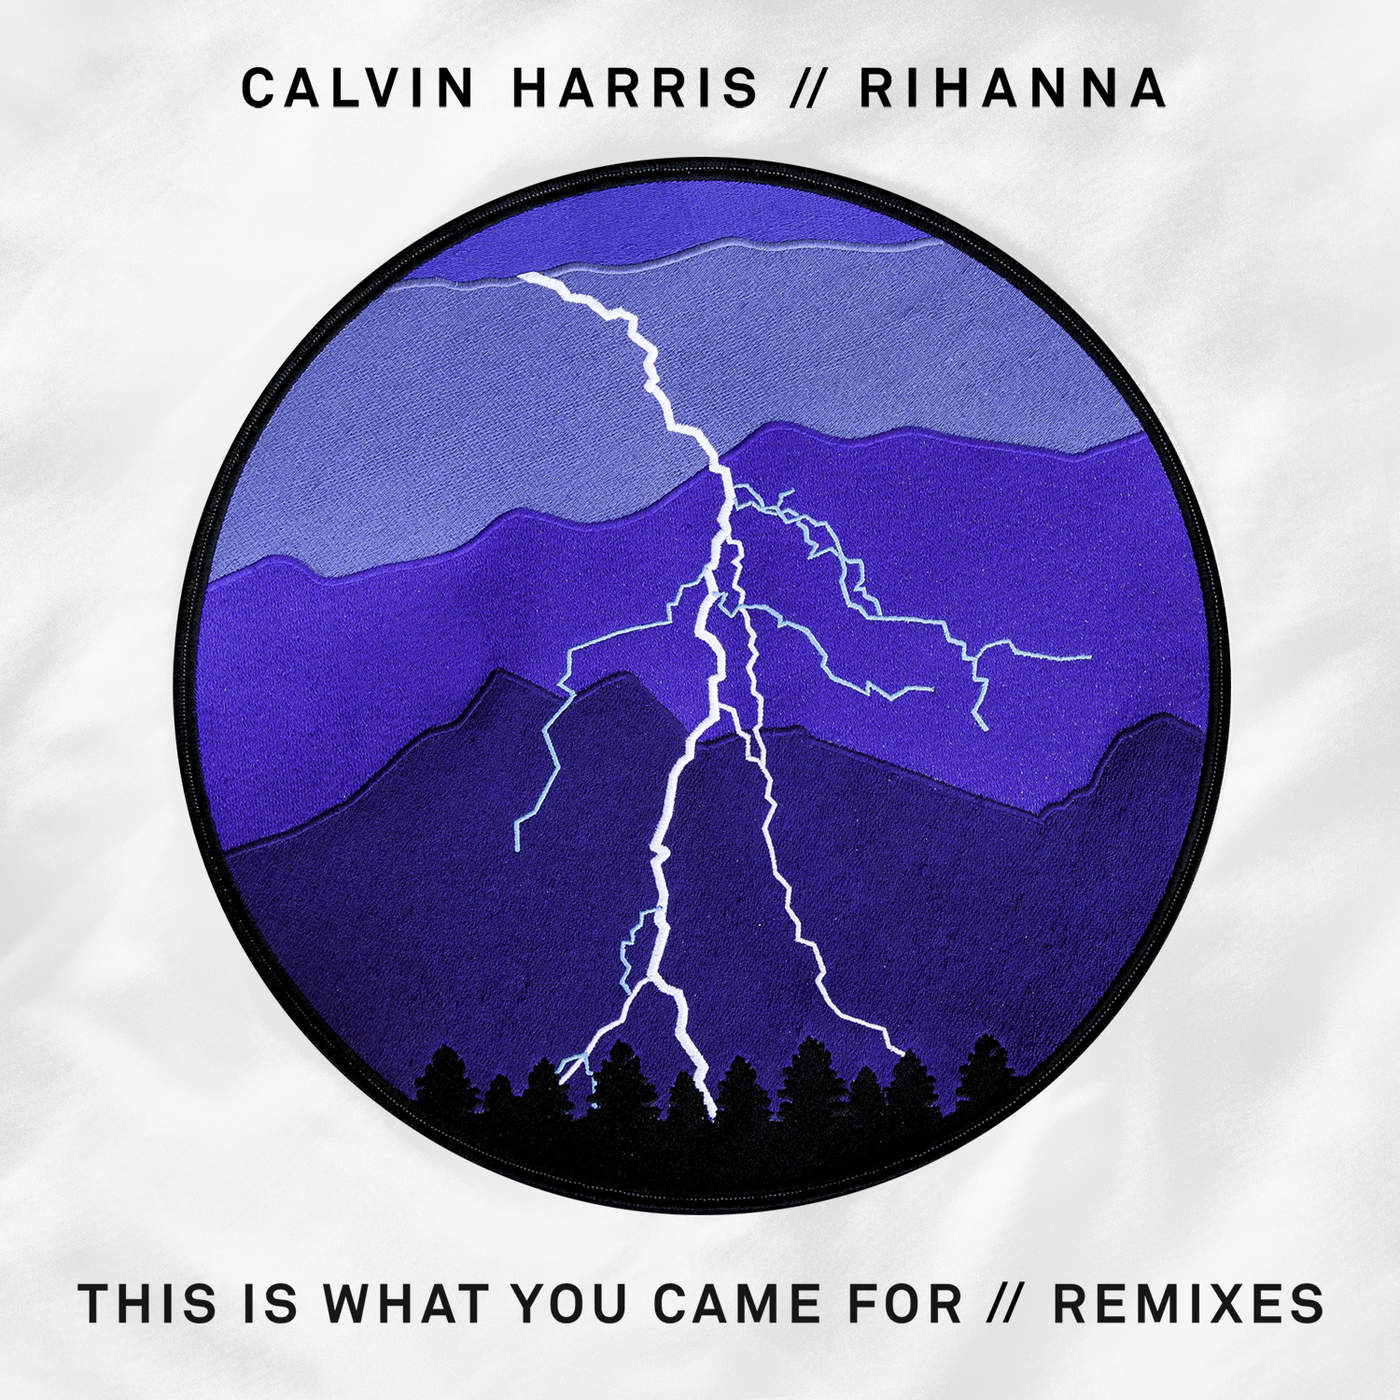 Calvin Harris - This Is What You Came For (feat. Rihanna) [Remixes] - EP Cover